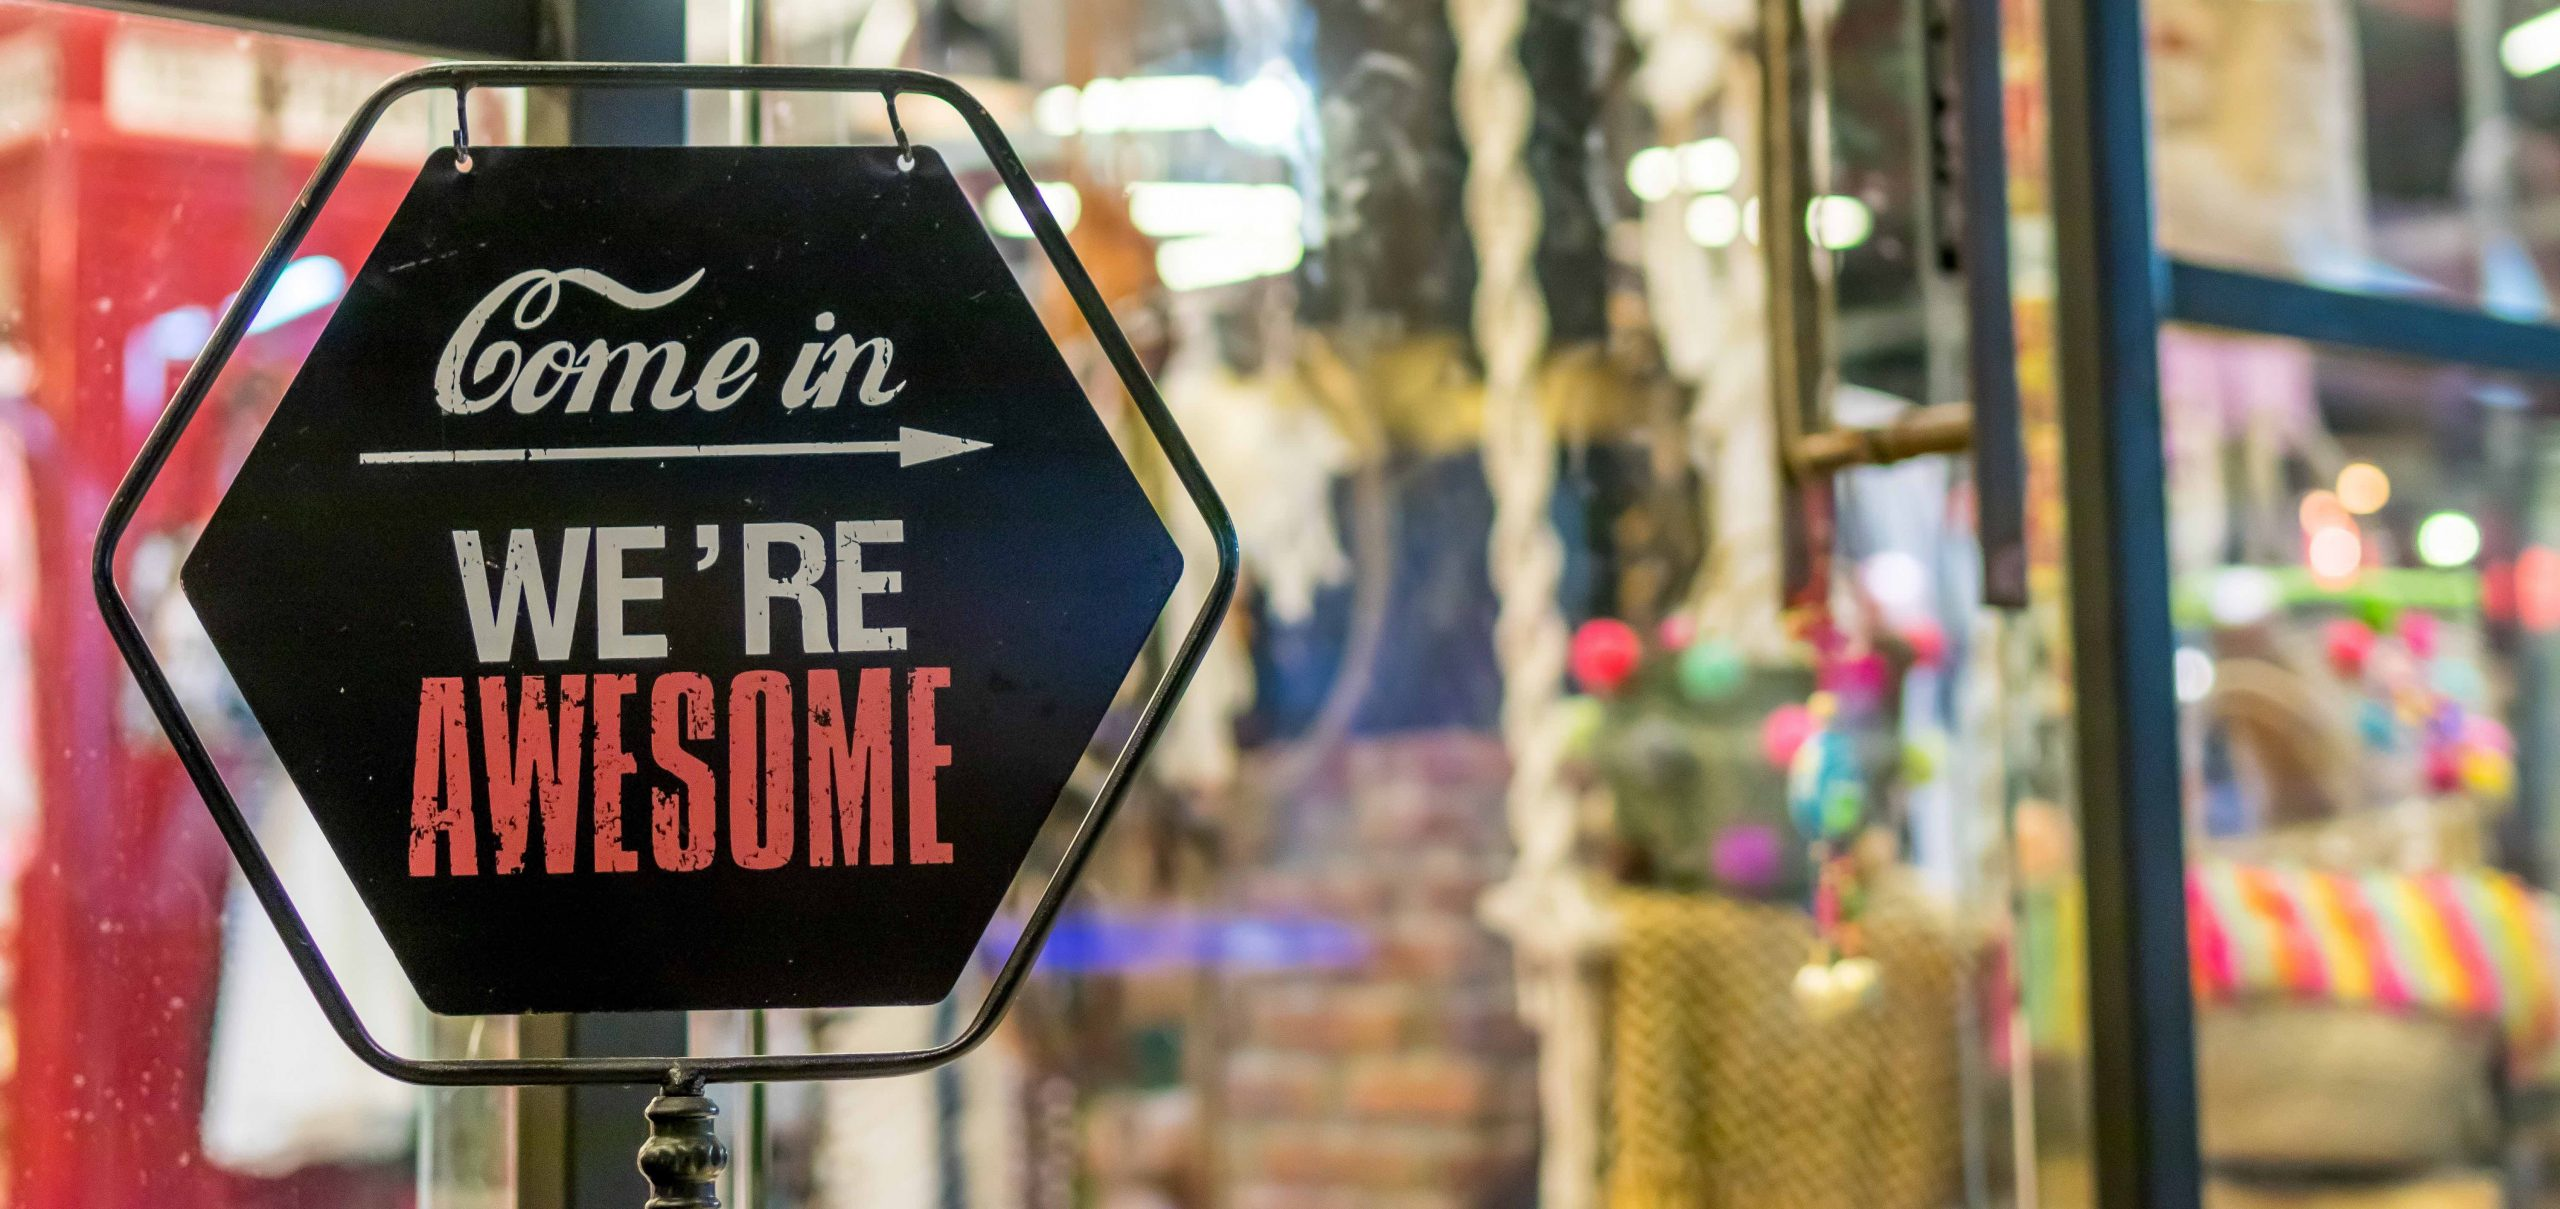 How to Promote Your Business Locally: 9 Local Marketing Ideas Proven to Work